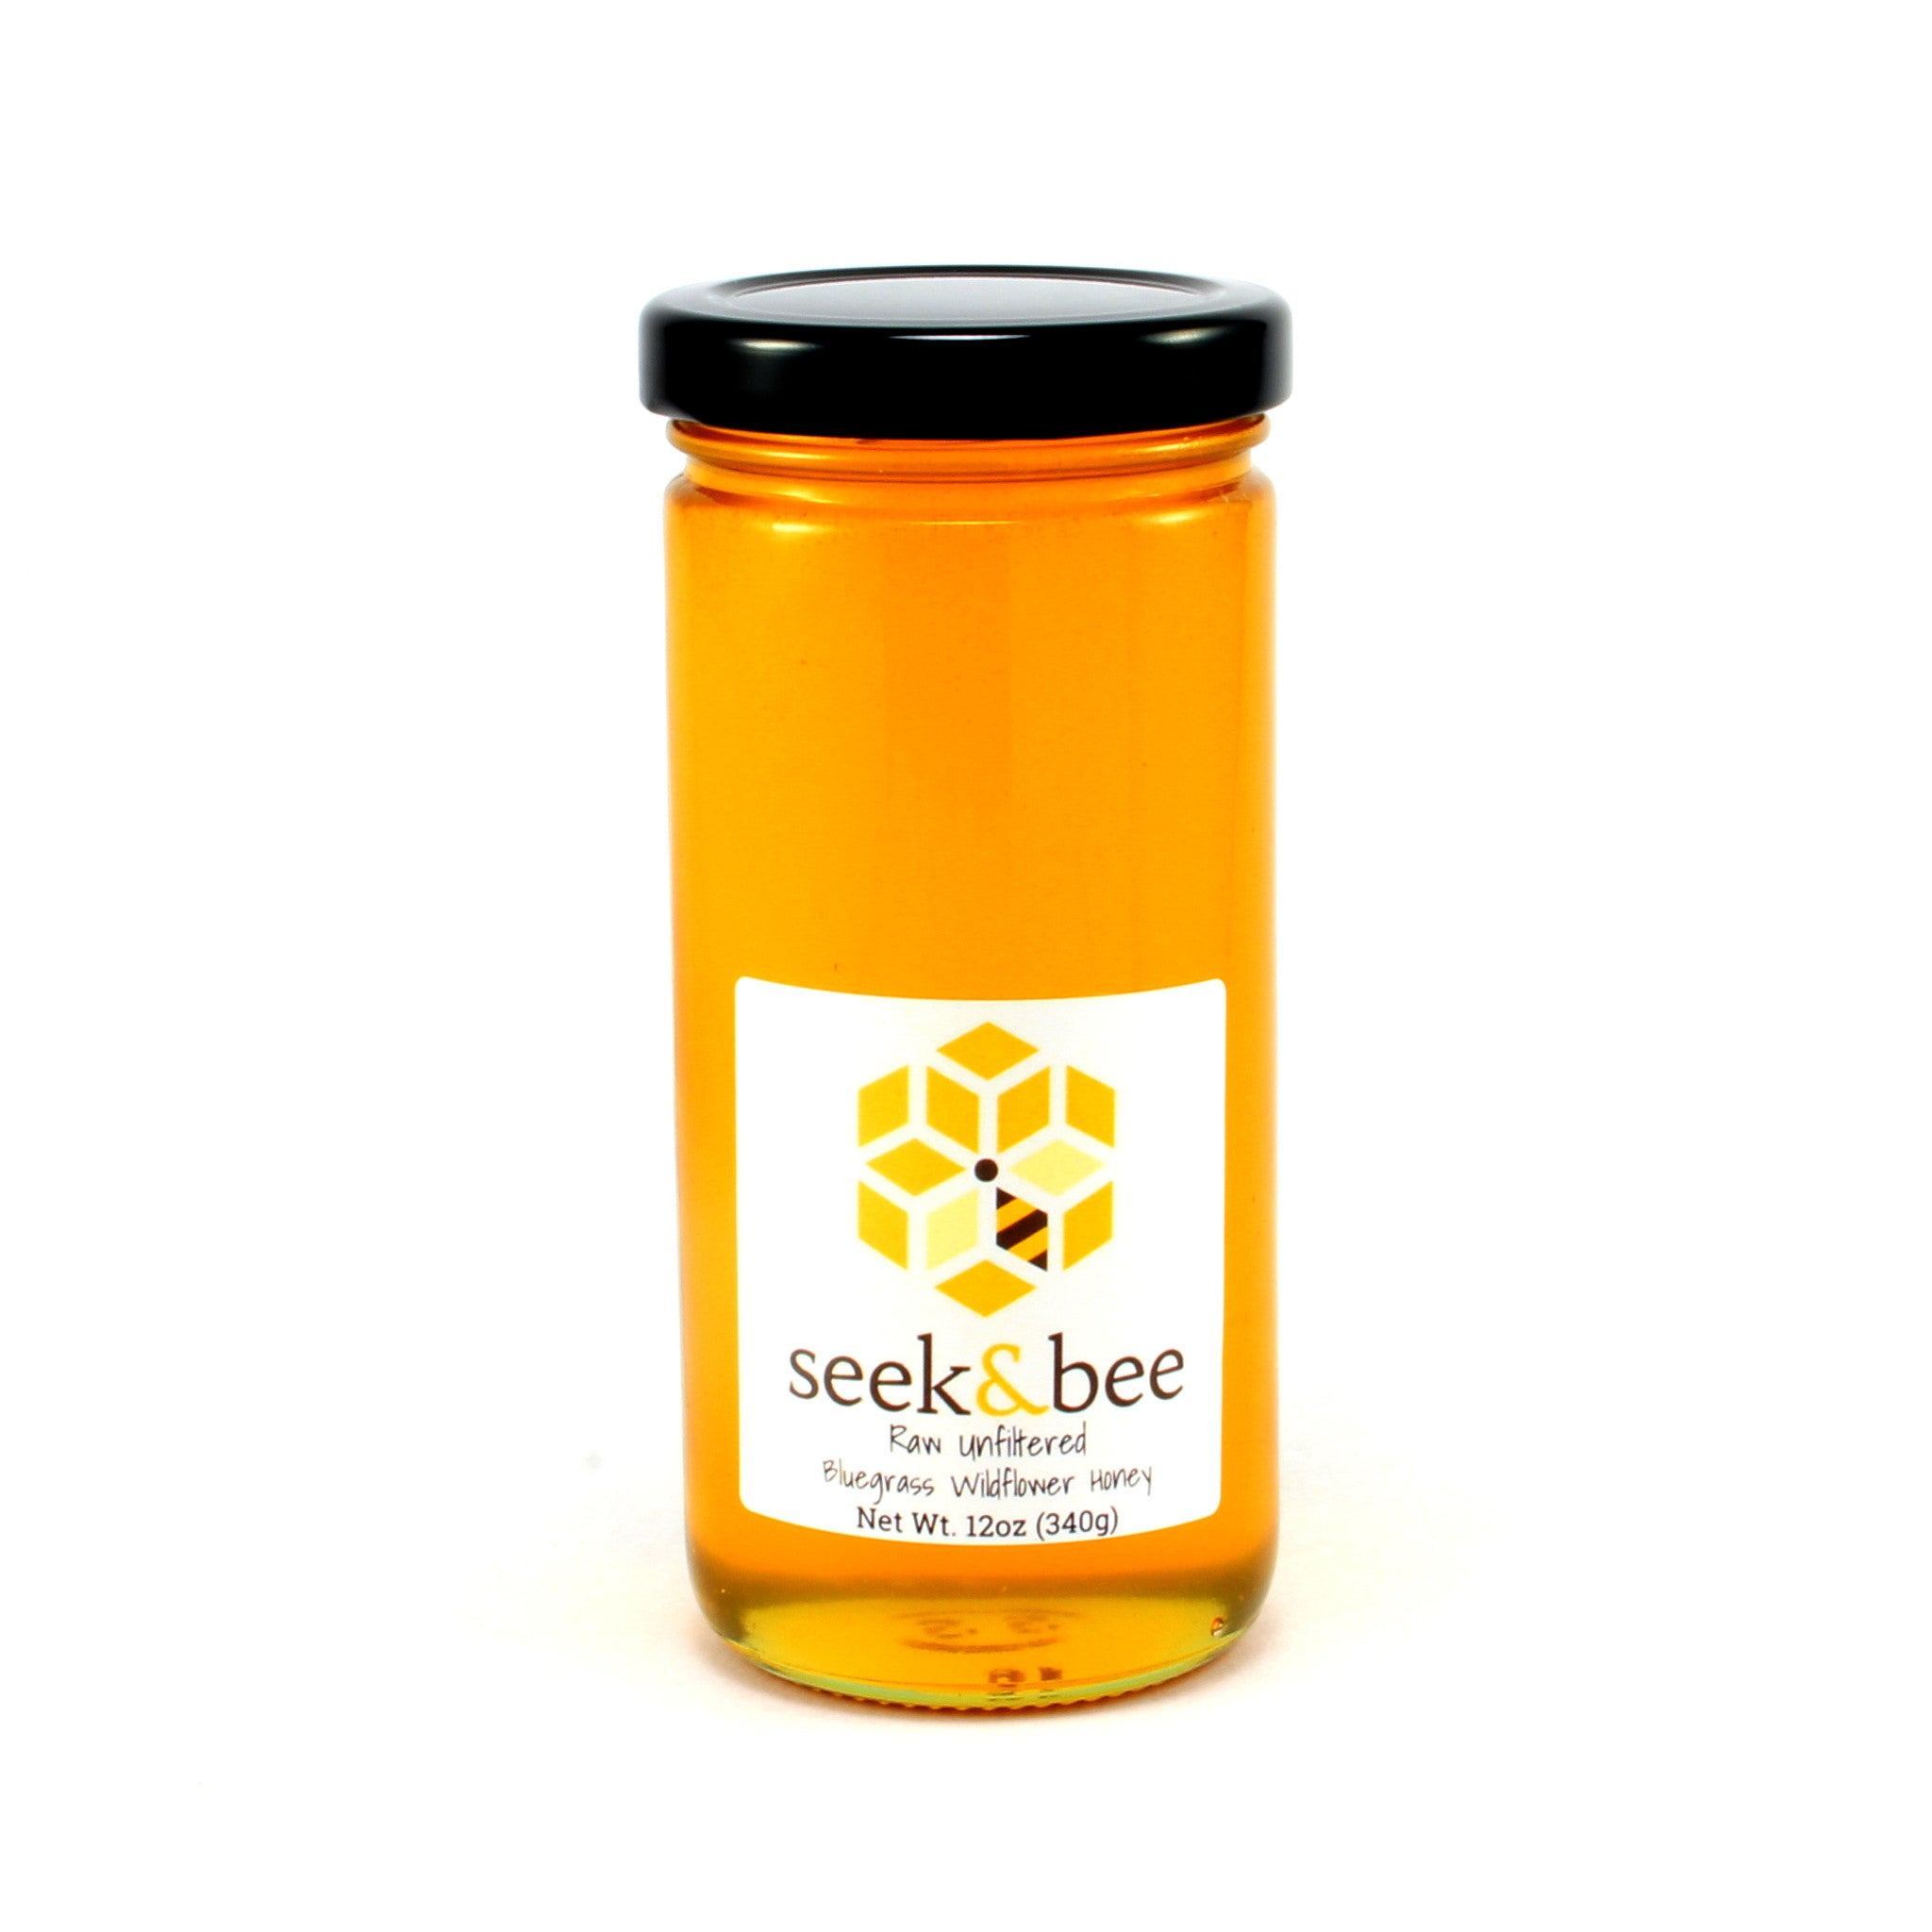 12 oz Raw Unfiltered Kentucky Wildflower Honey